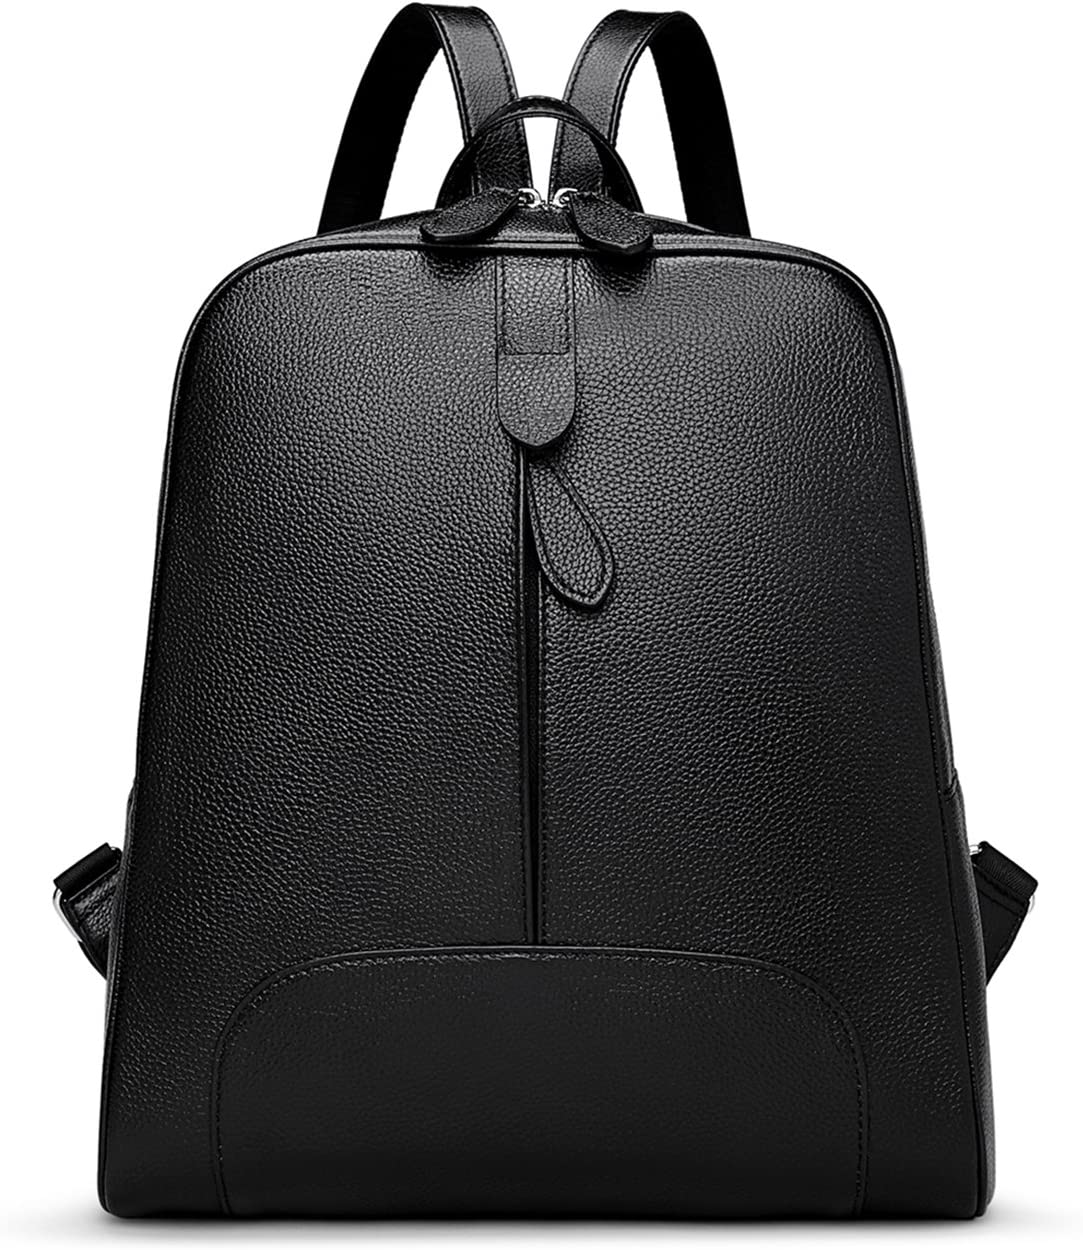 Hot Style Women Real Genuine Leather Backpack Purse SchoolBag for ladies by Coolcy (Black)